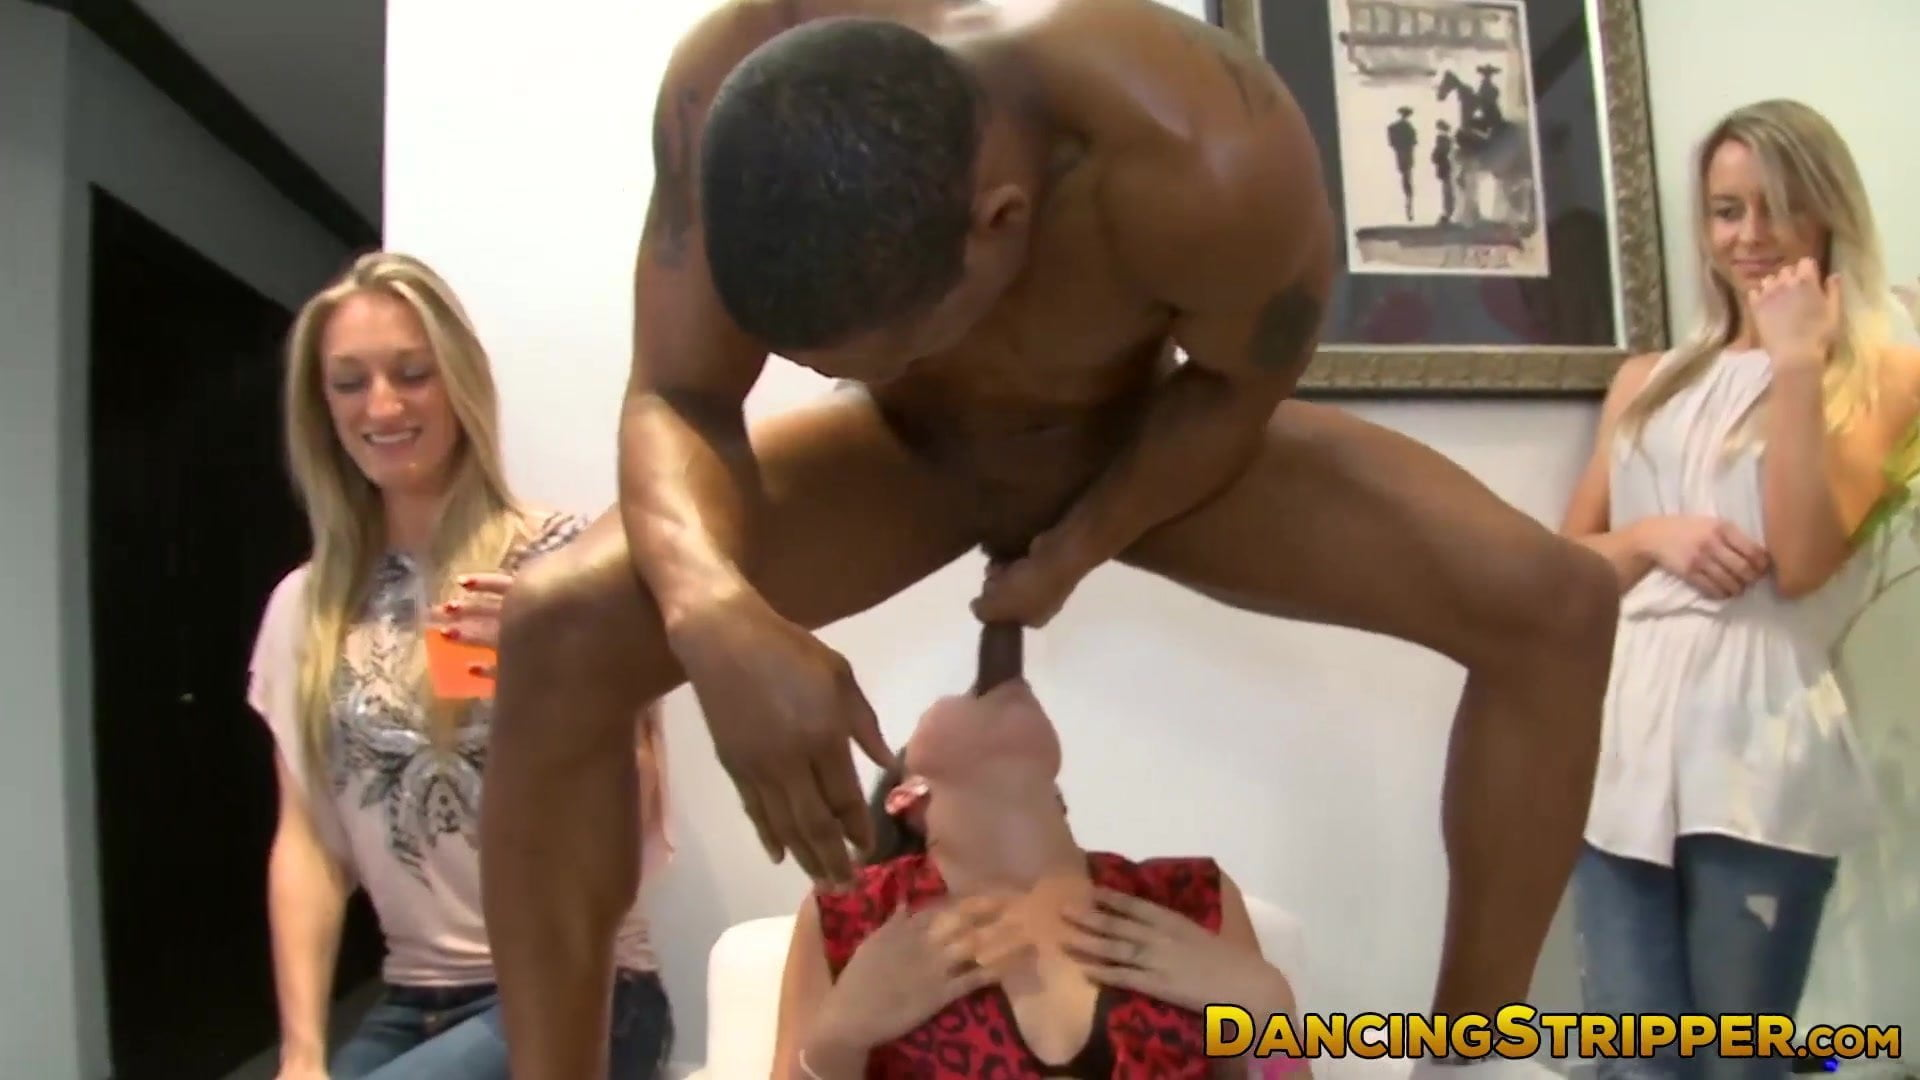 Big booty college chicks turned on by hung stripper